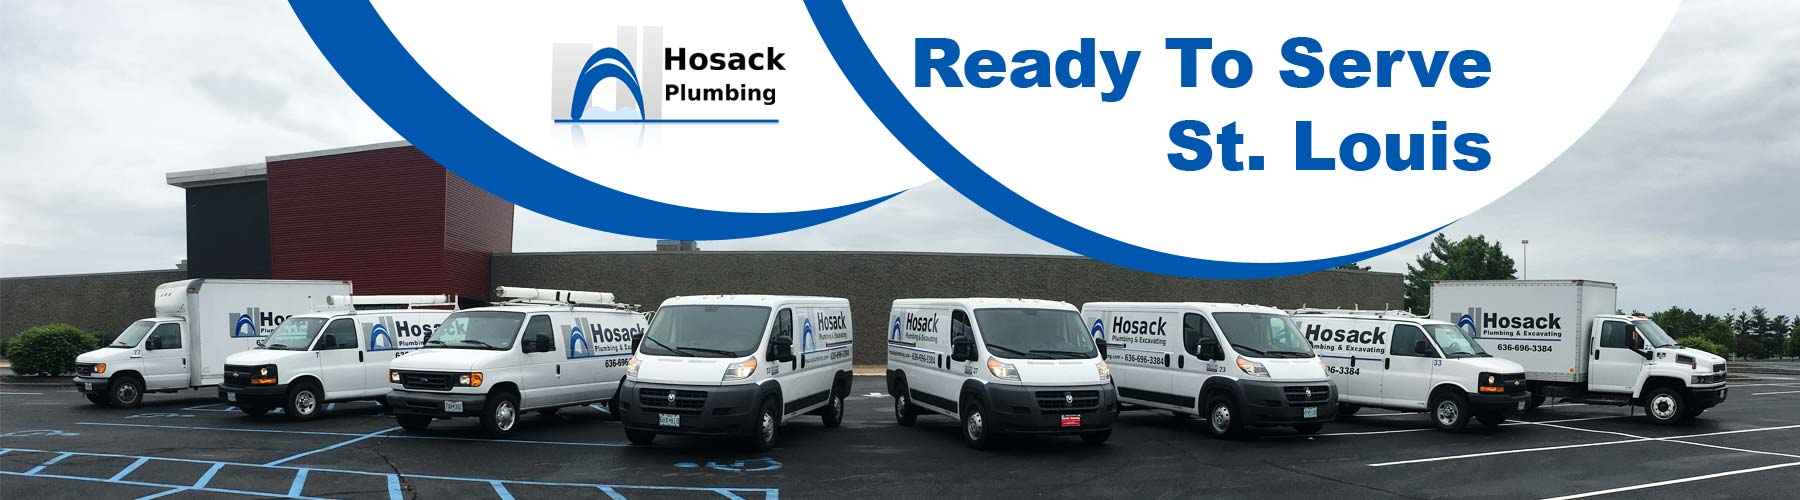 St. Louis plumbing services